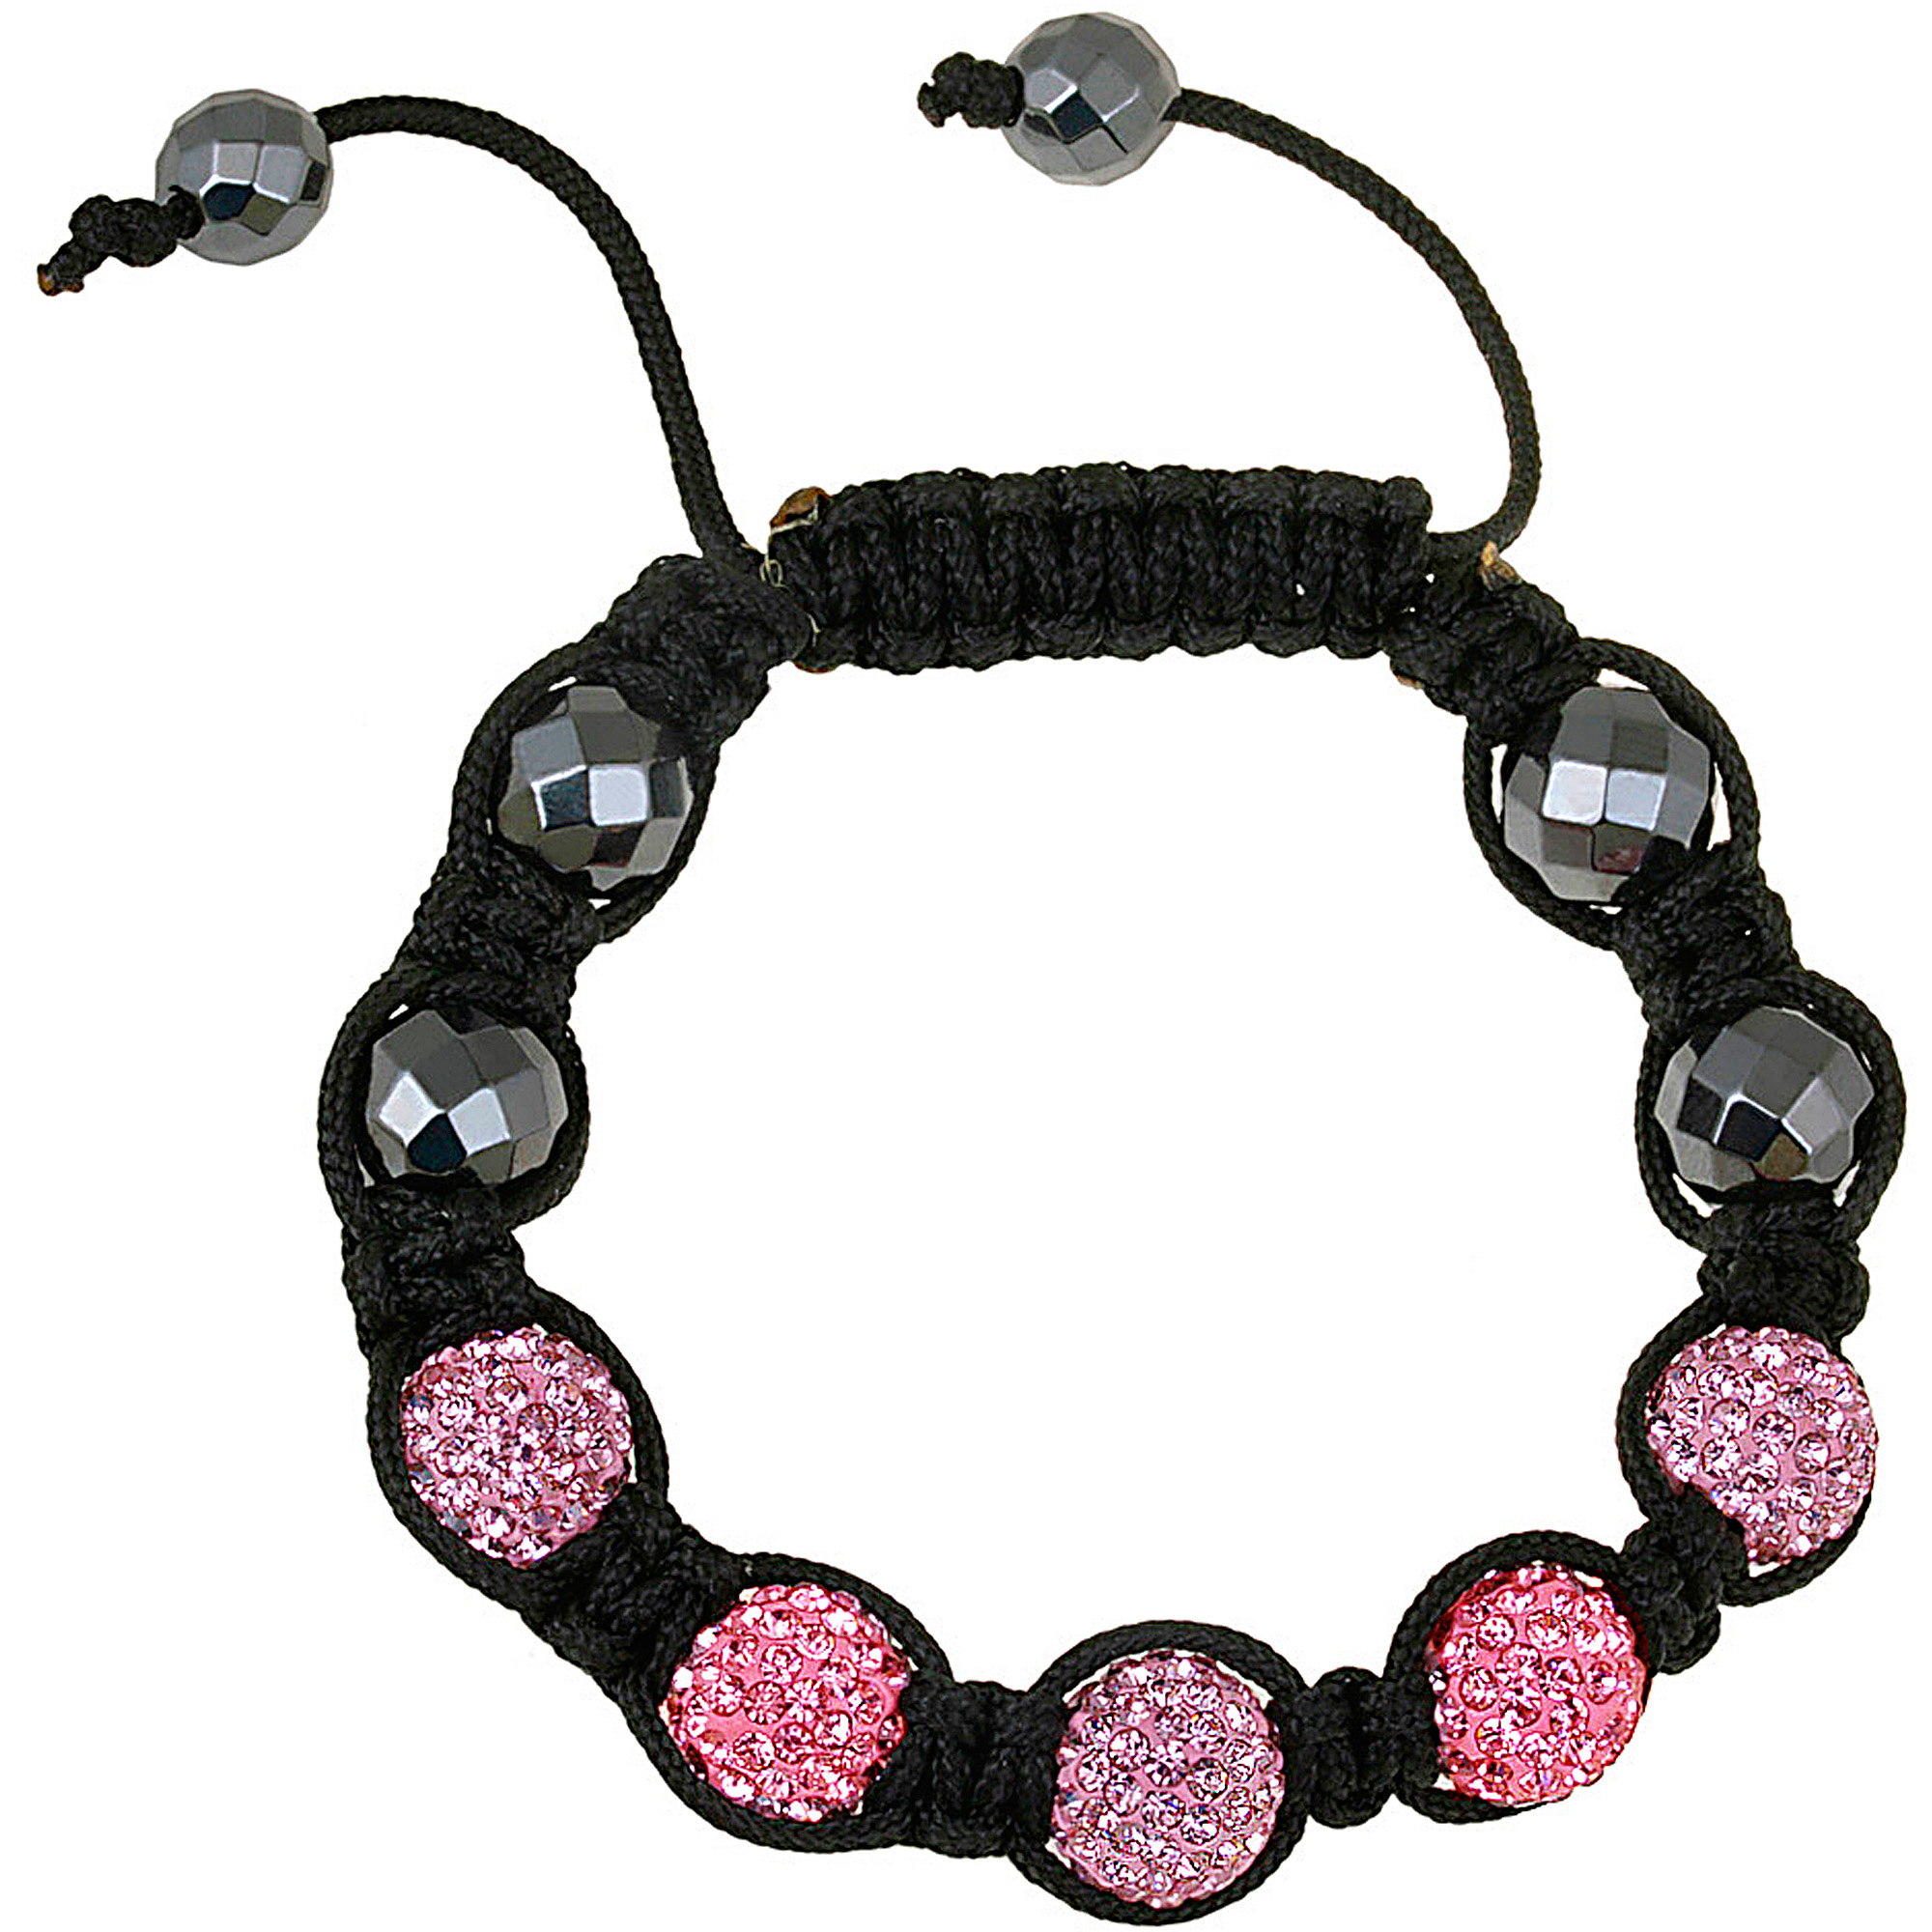 Crystal Shades of Pink Fireball & Hematite 10mm Shamballa Adjustable Bracelet, 7.5""